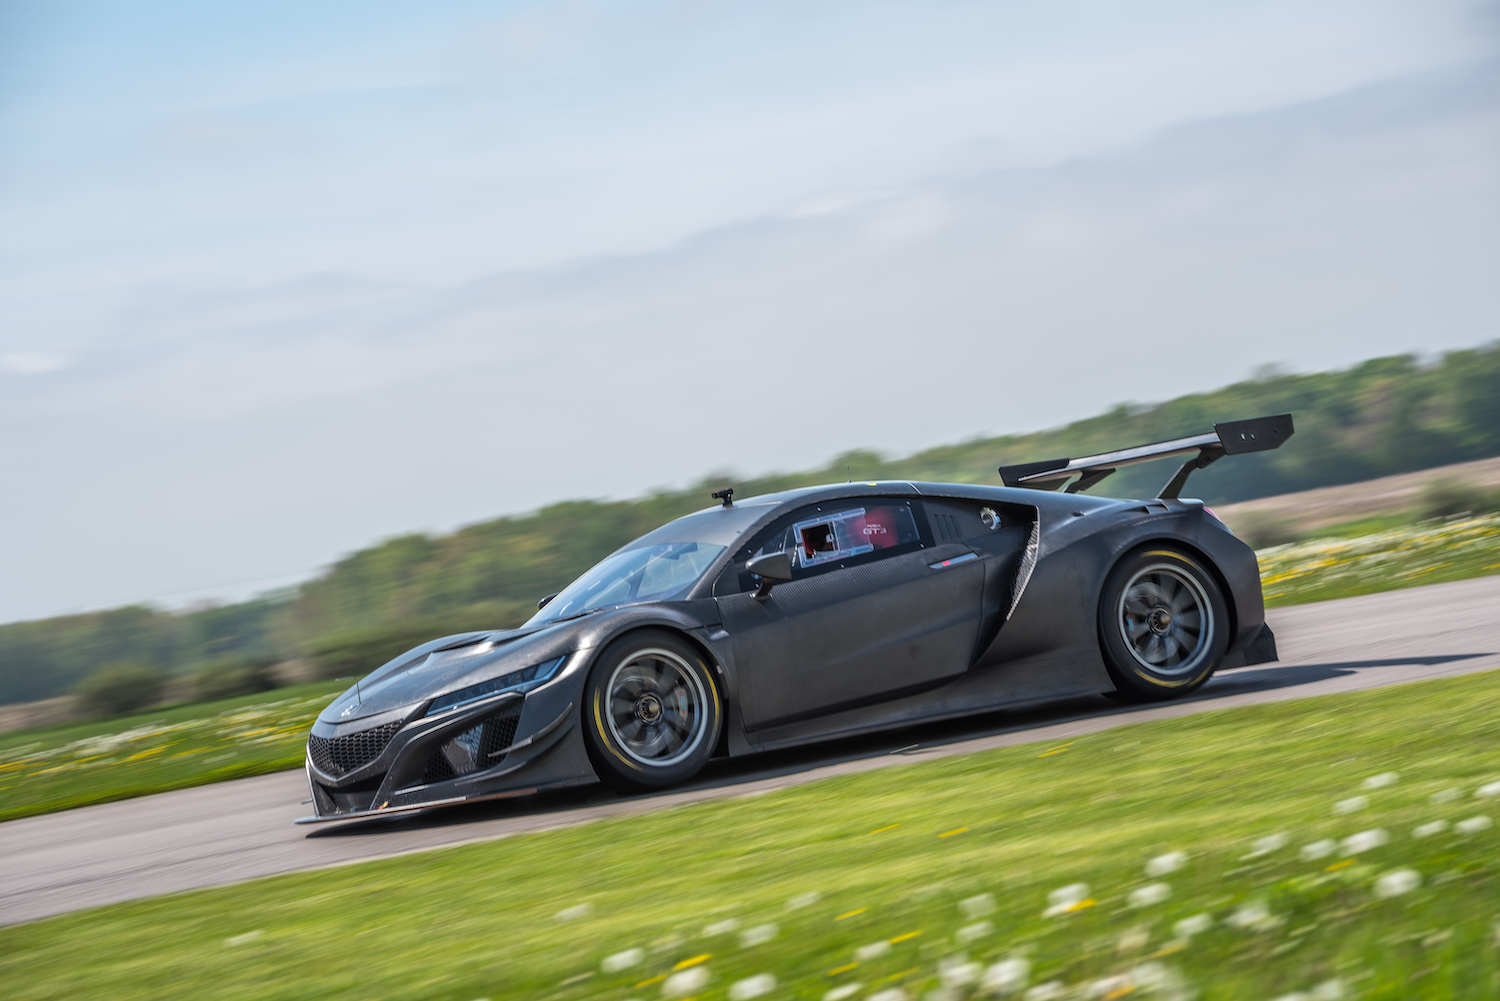 nsx gt3 race car on track side-view